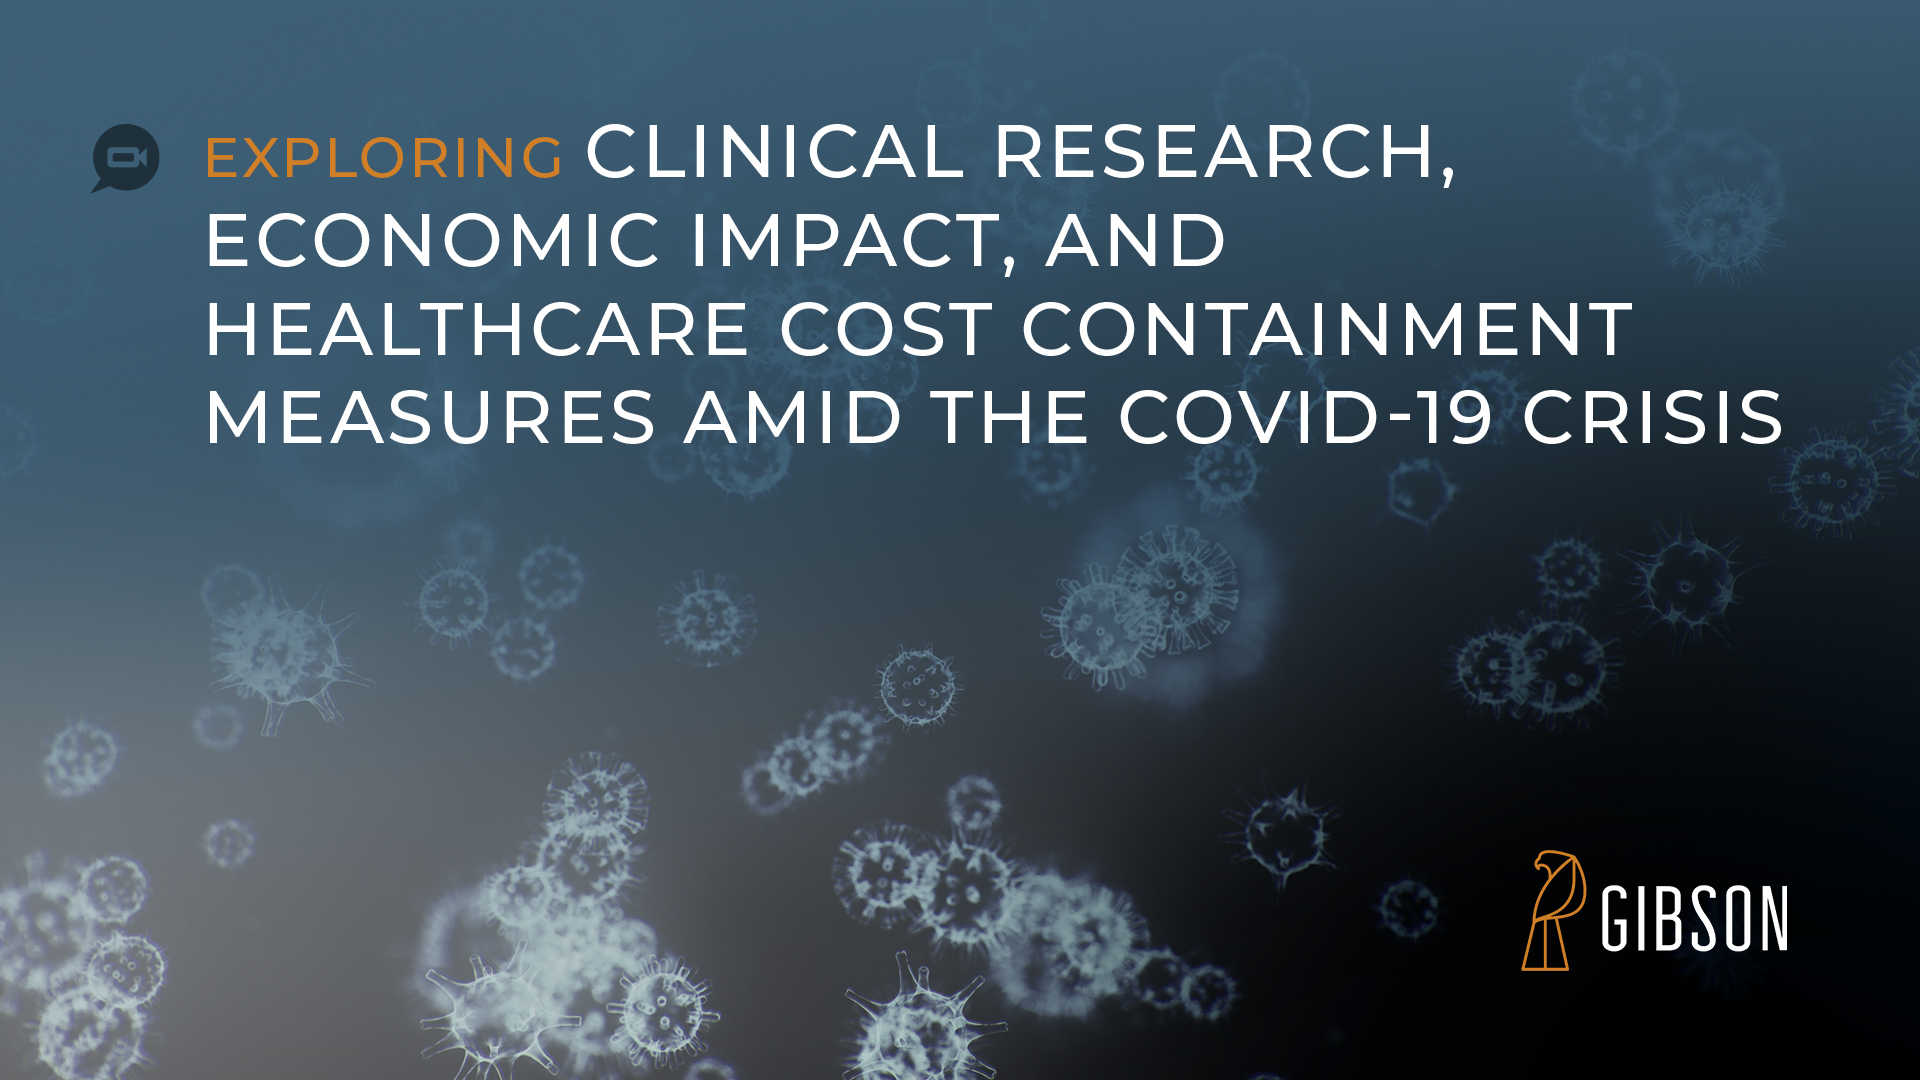 Exploring Clinical Research, Economic Impact, and Healthcare Cost Containment Measures Amid the COVI